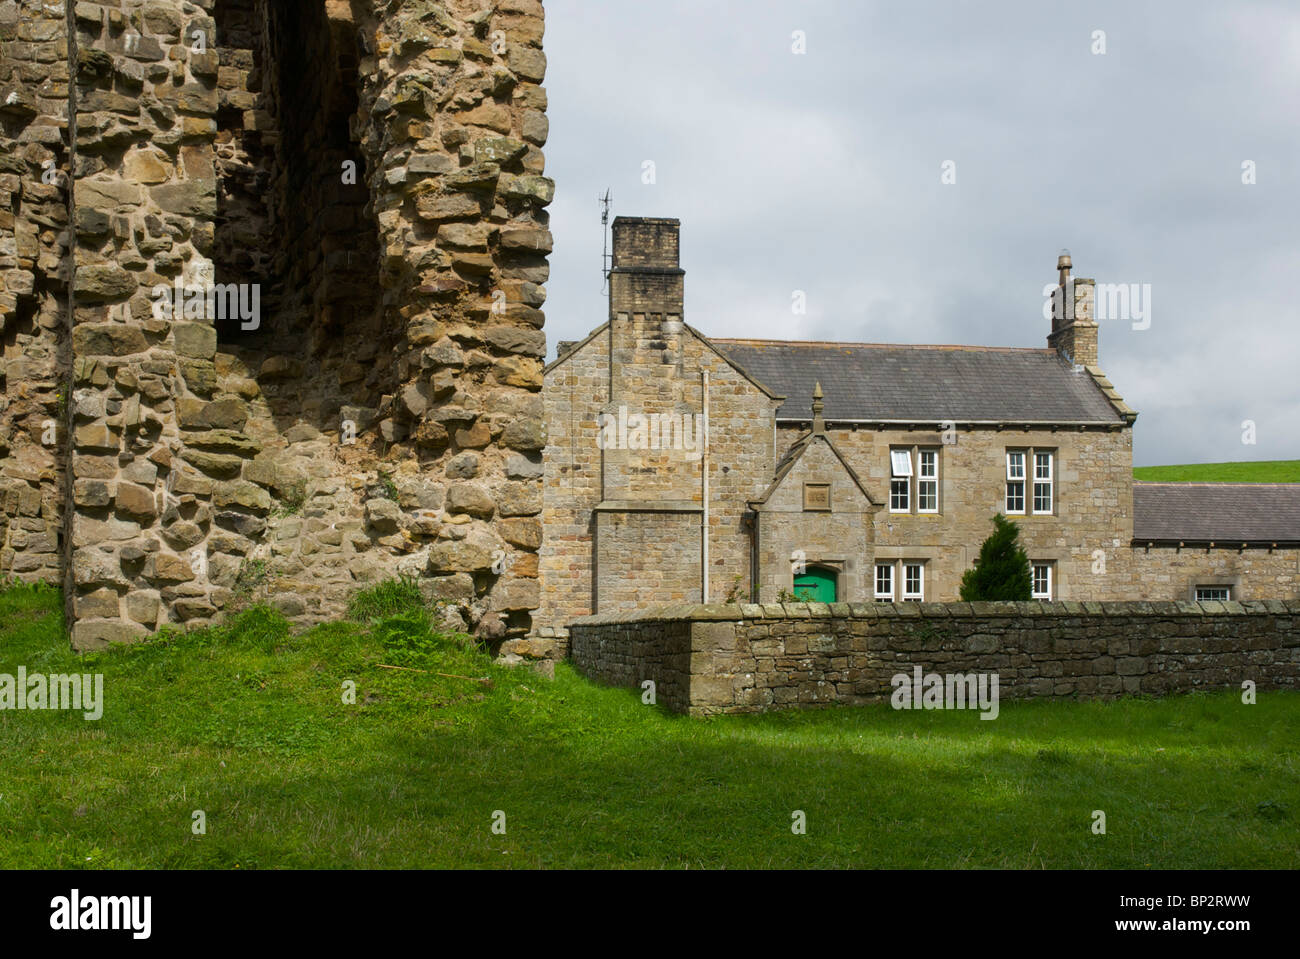 Thirlwall Castle, near Greenhead - and Hadrian's Wall - Cumbria, England UK - Stock Image